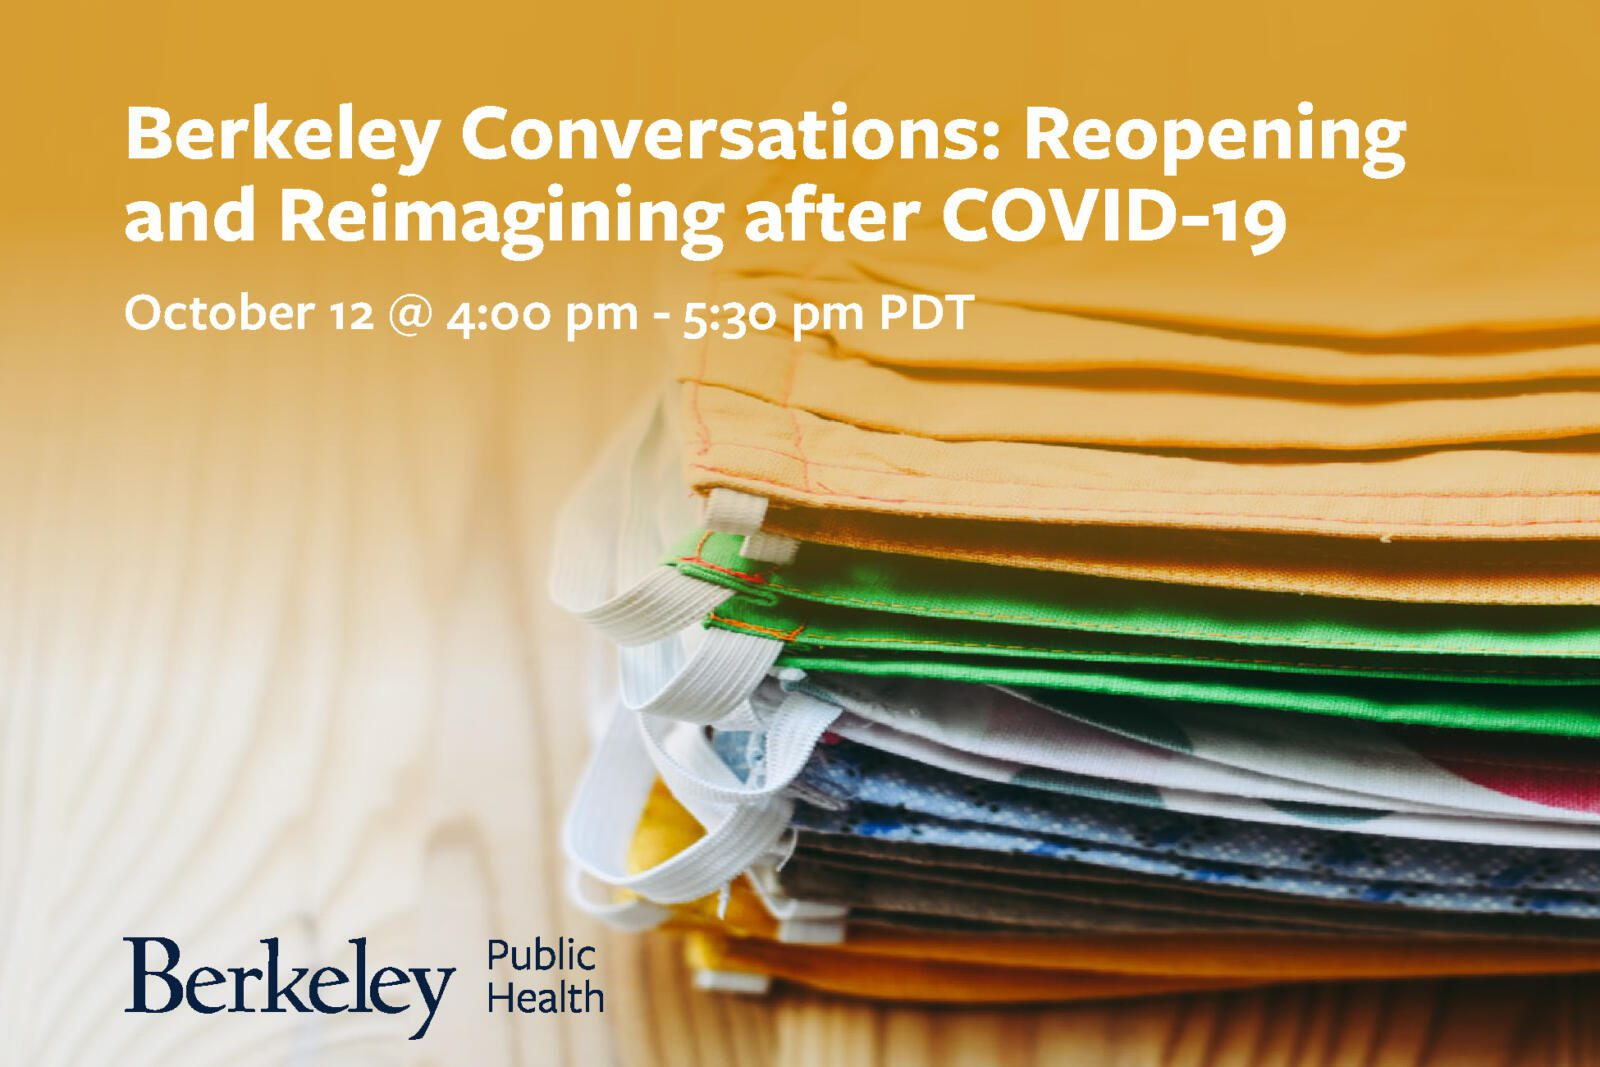 Text overlay: Berkeley conversations reopening after COVID-19